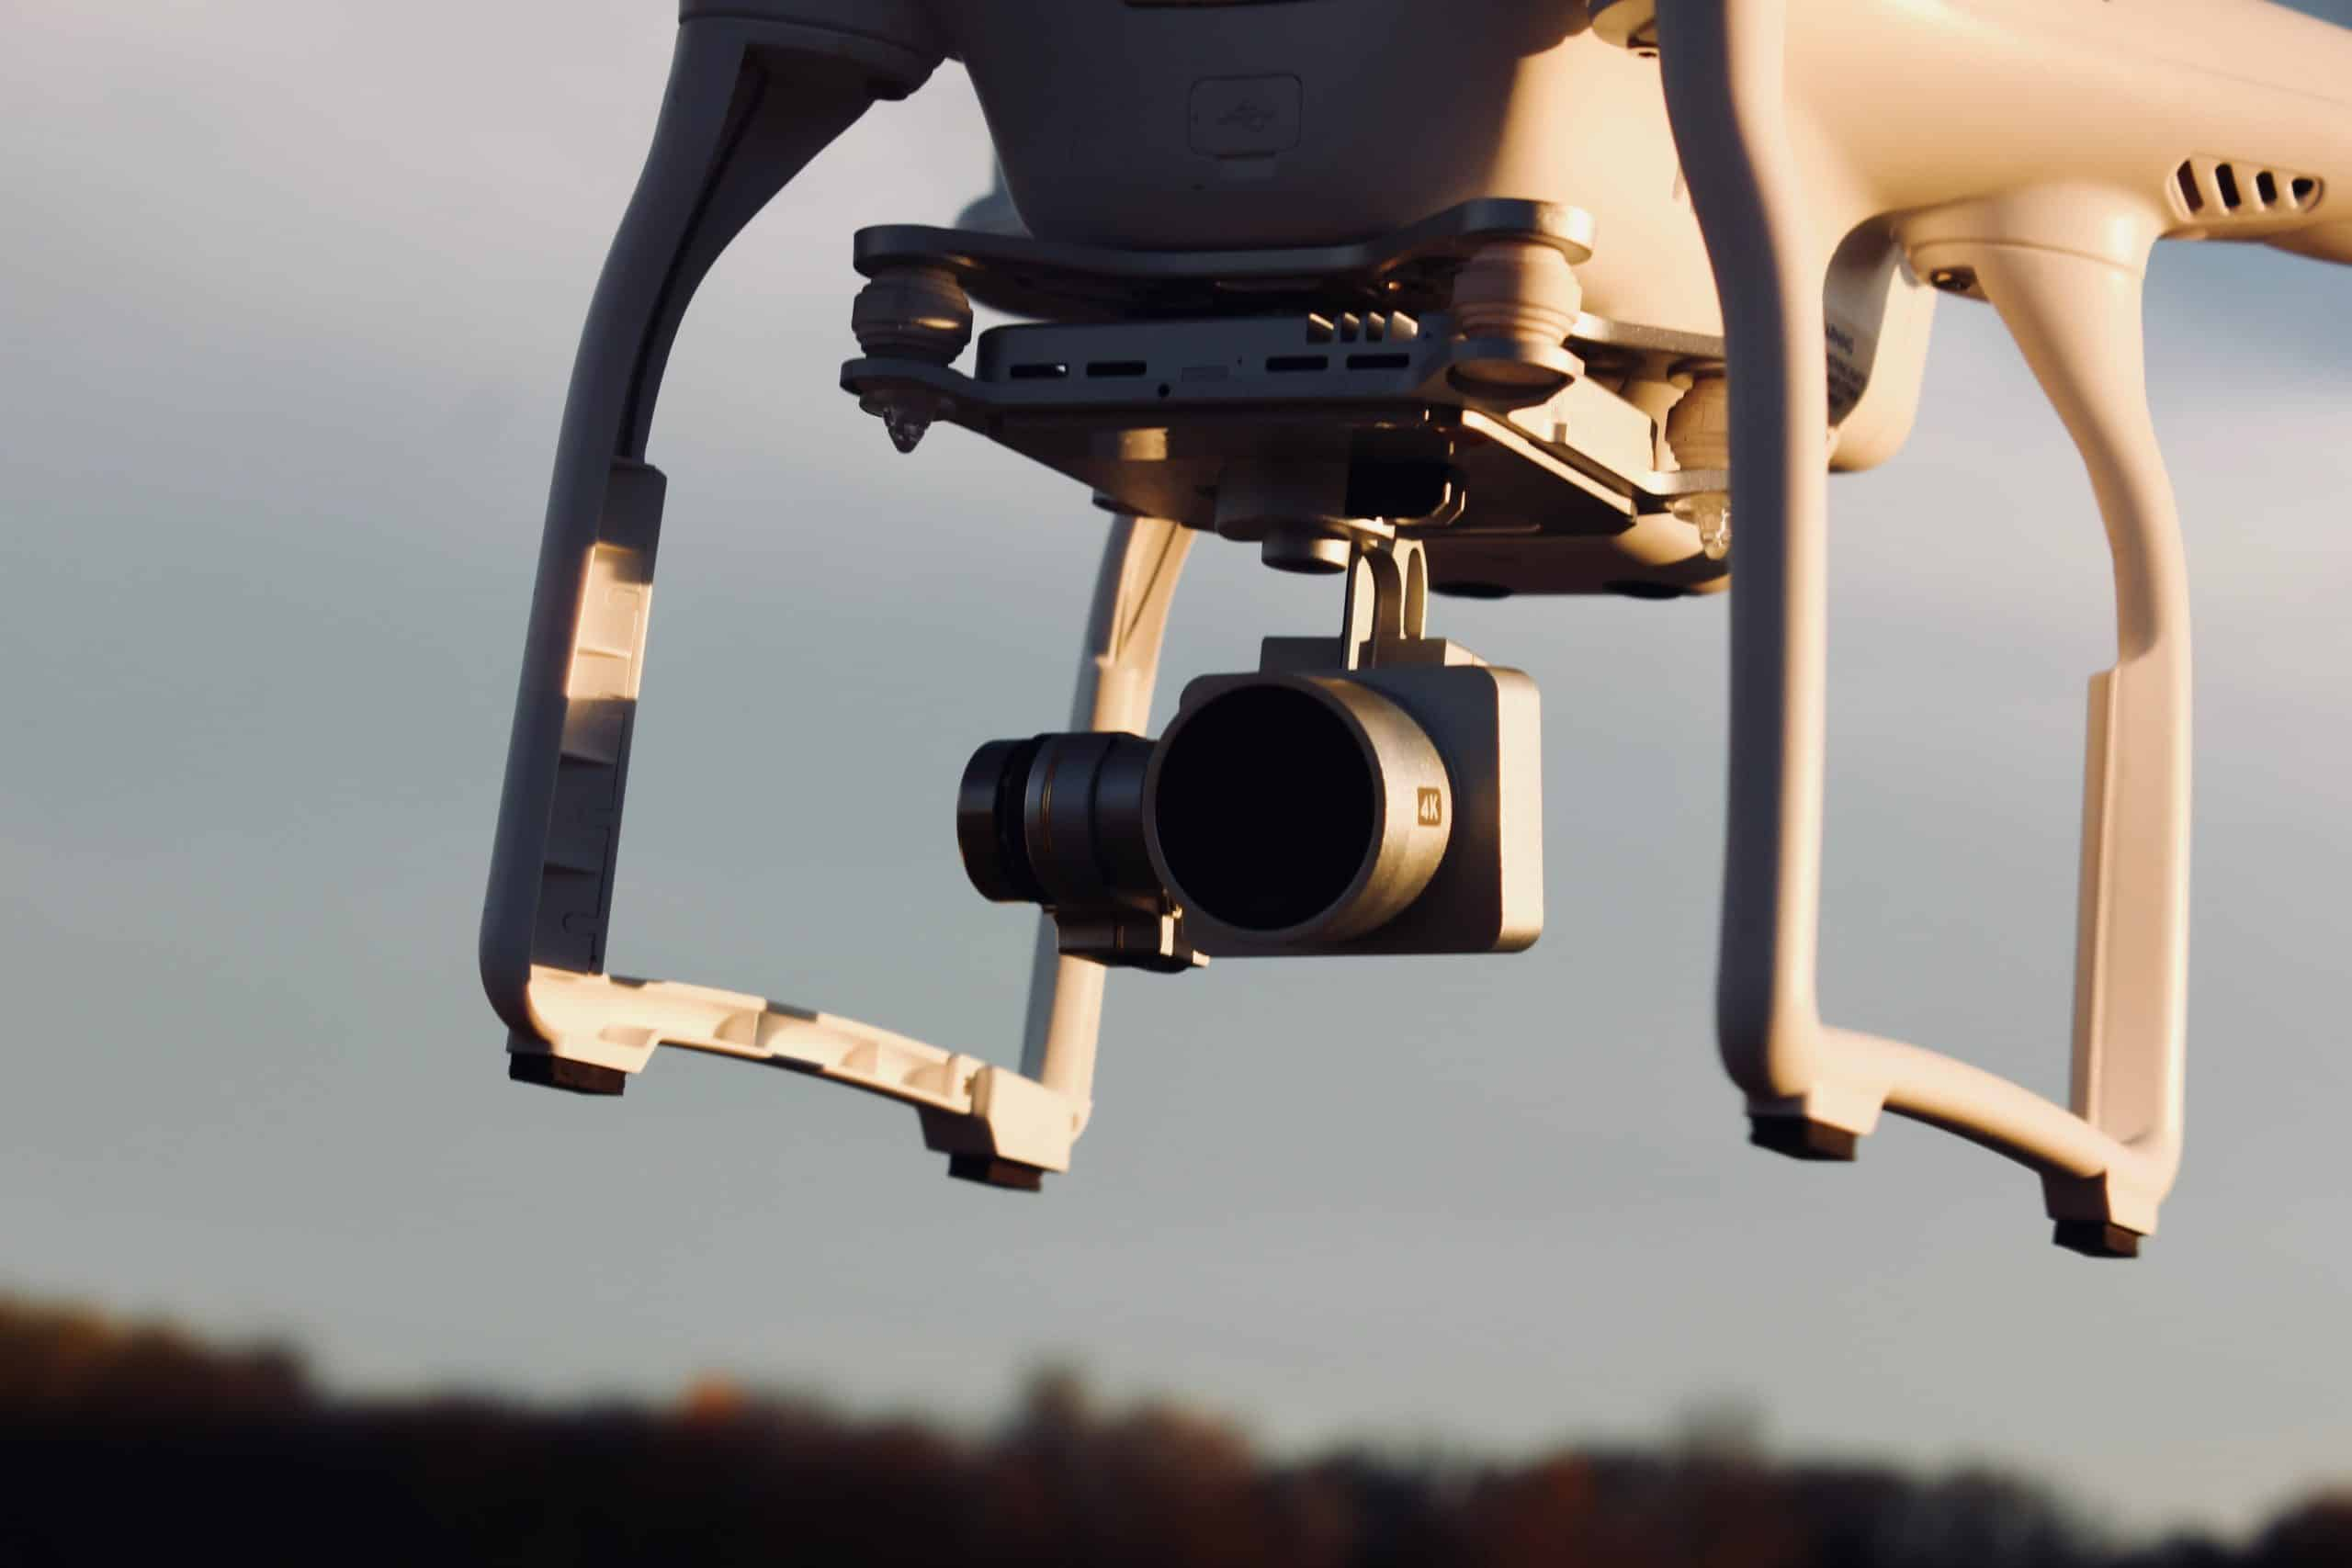 Tips For Choosing the Best Drone Cameras For Video